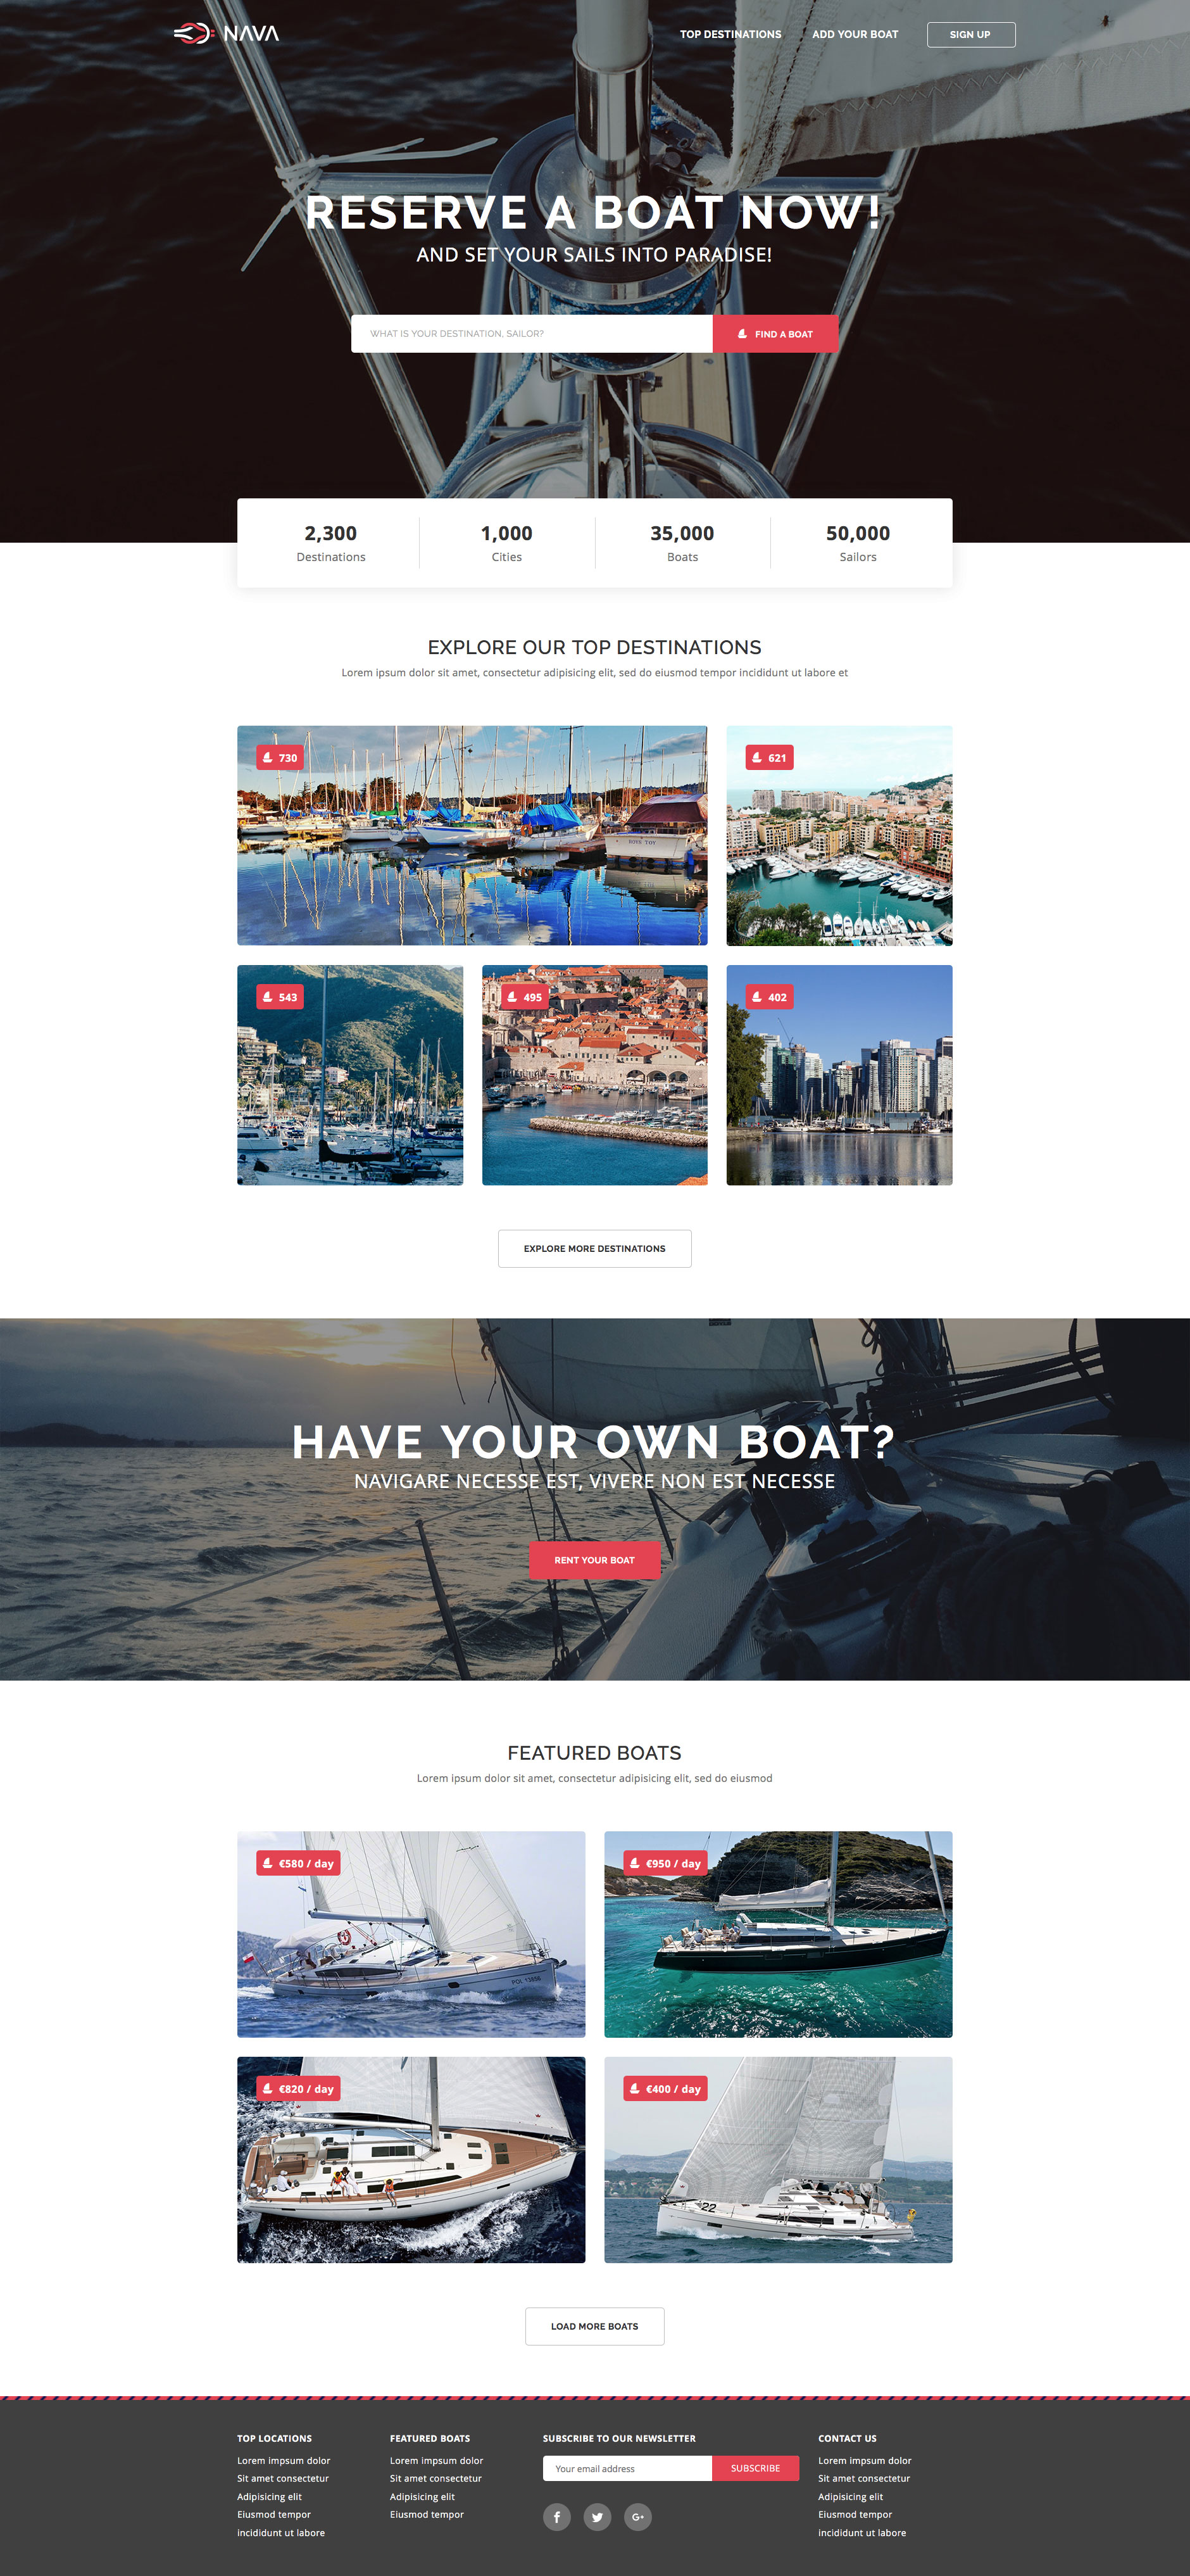 Nava is a clean, modern free responsive HTML5 website template for sites related to sailing boats, ships, cruisers, etc. You can also use Nava HTML template for diverse tourism or vacation projects. Nava is fully responsive and based on the popular Bootstrap framework.